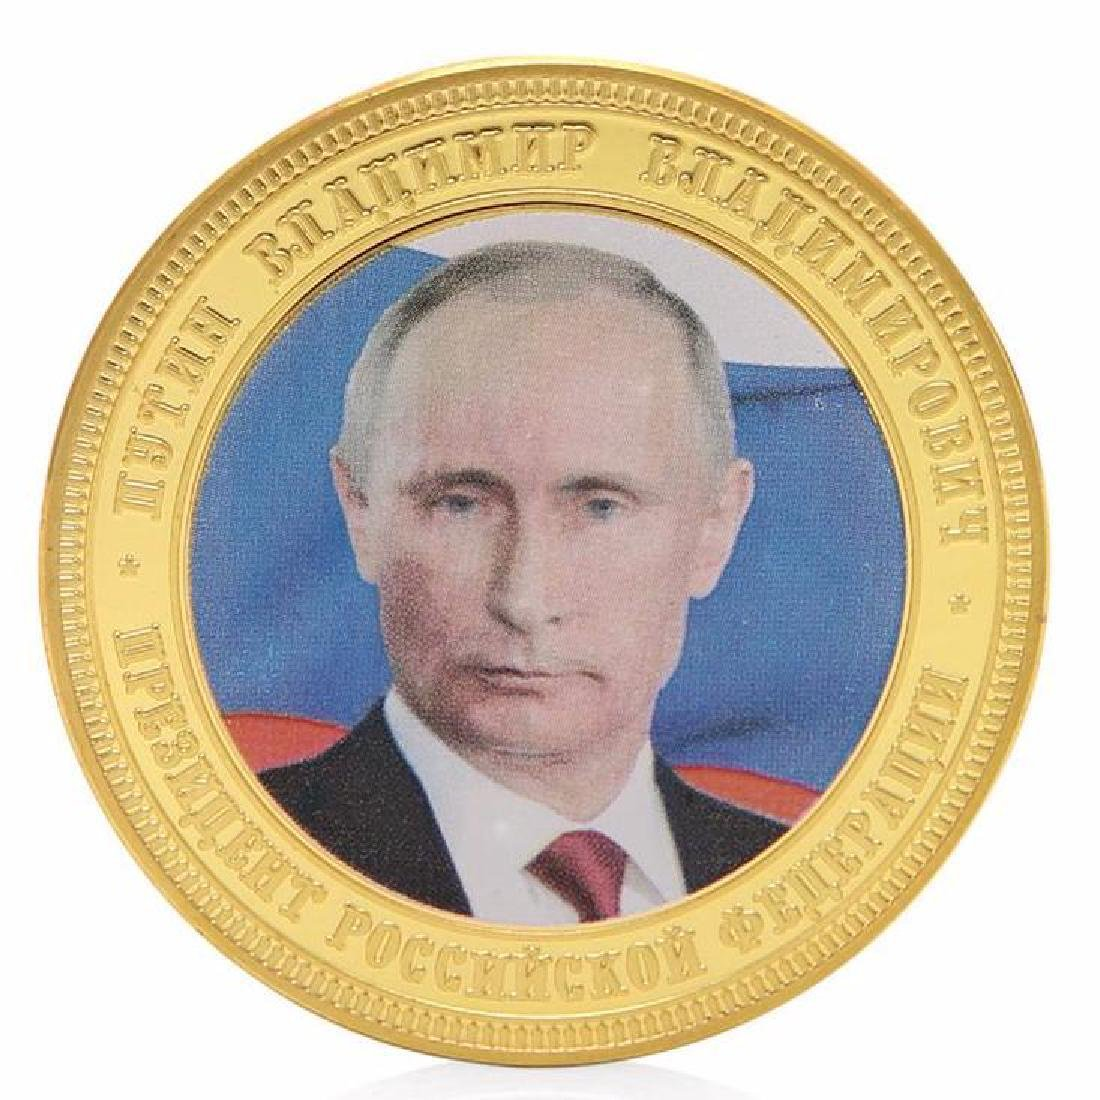 Crimea Russia Vladimir Putin Commemorative Coin